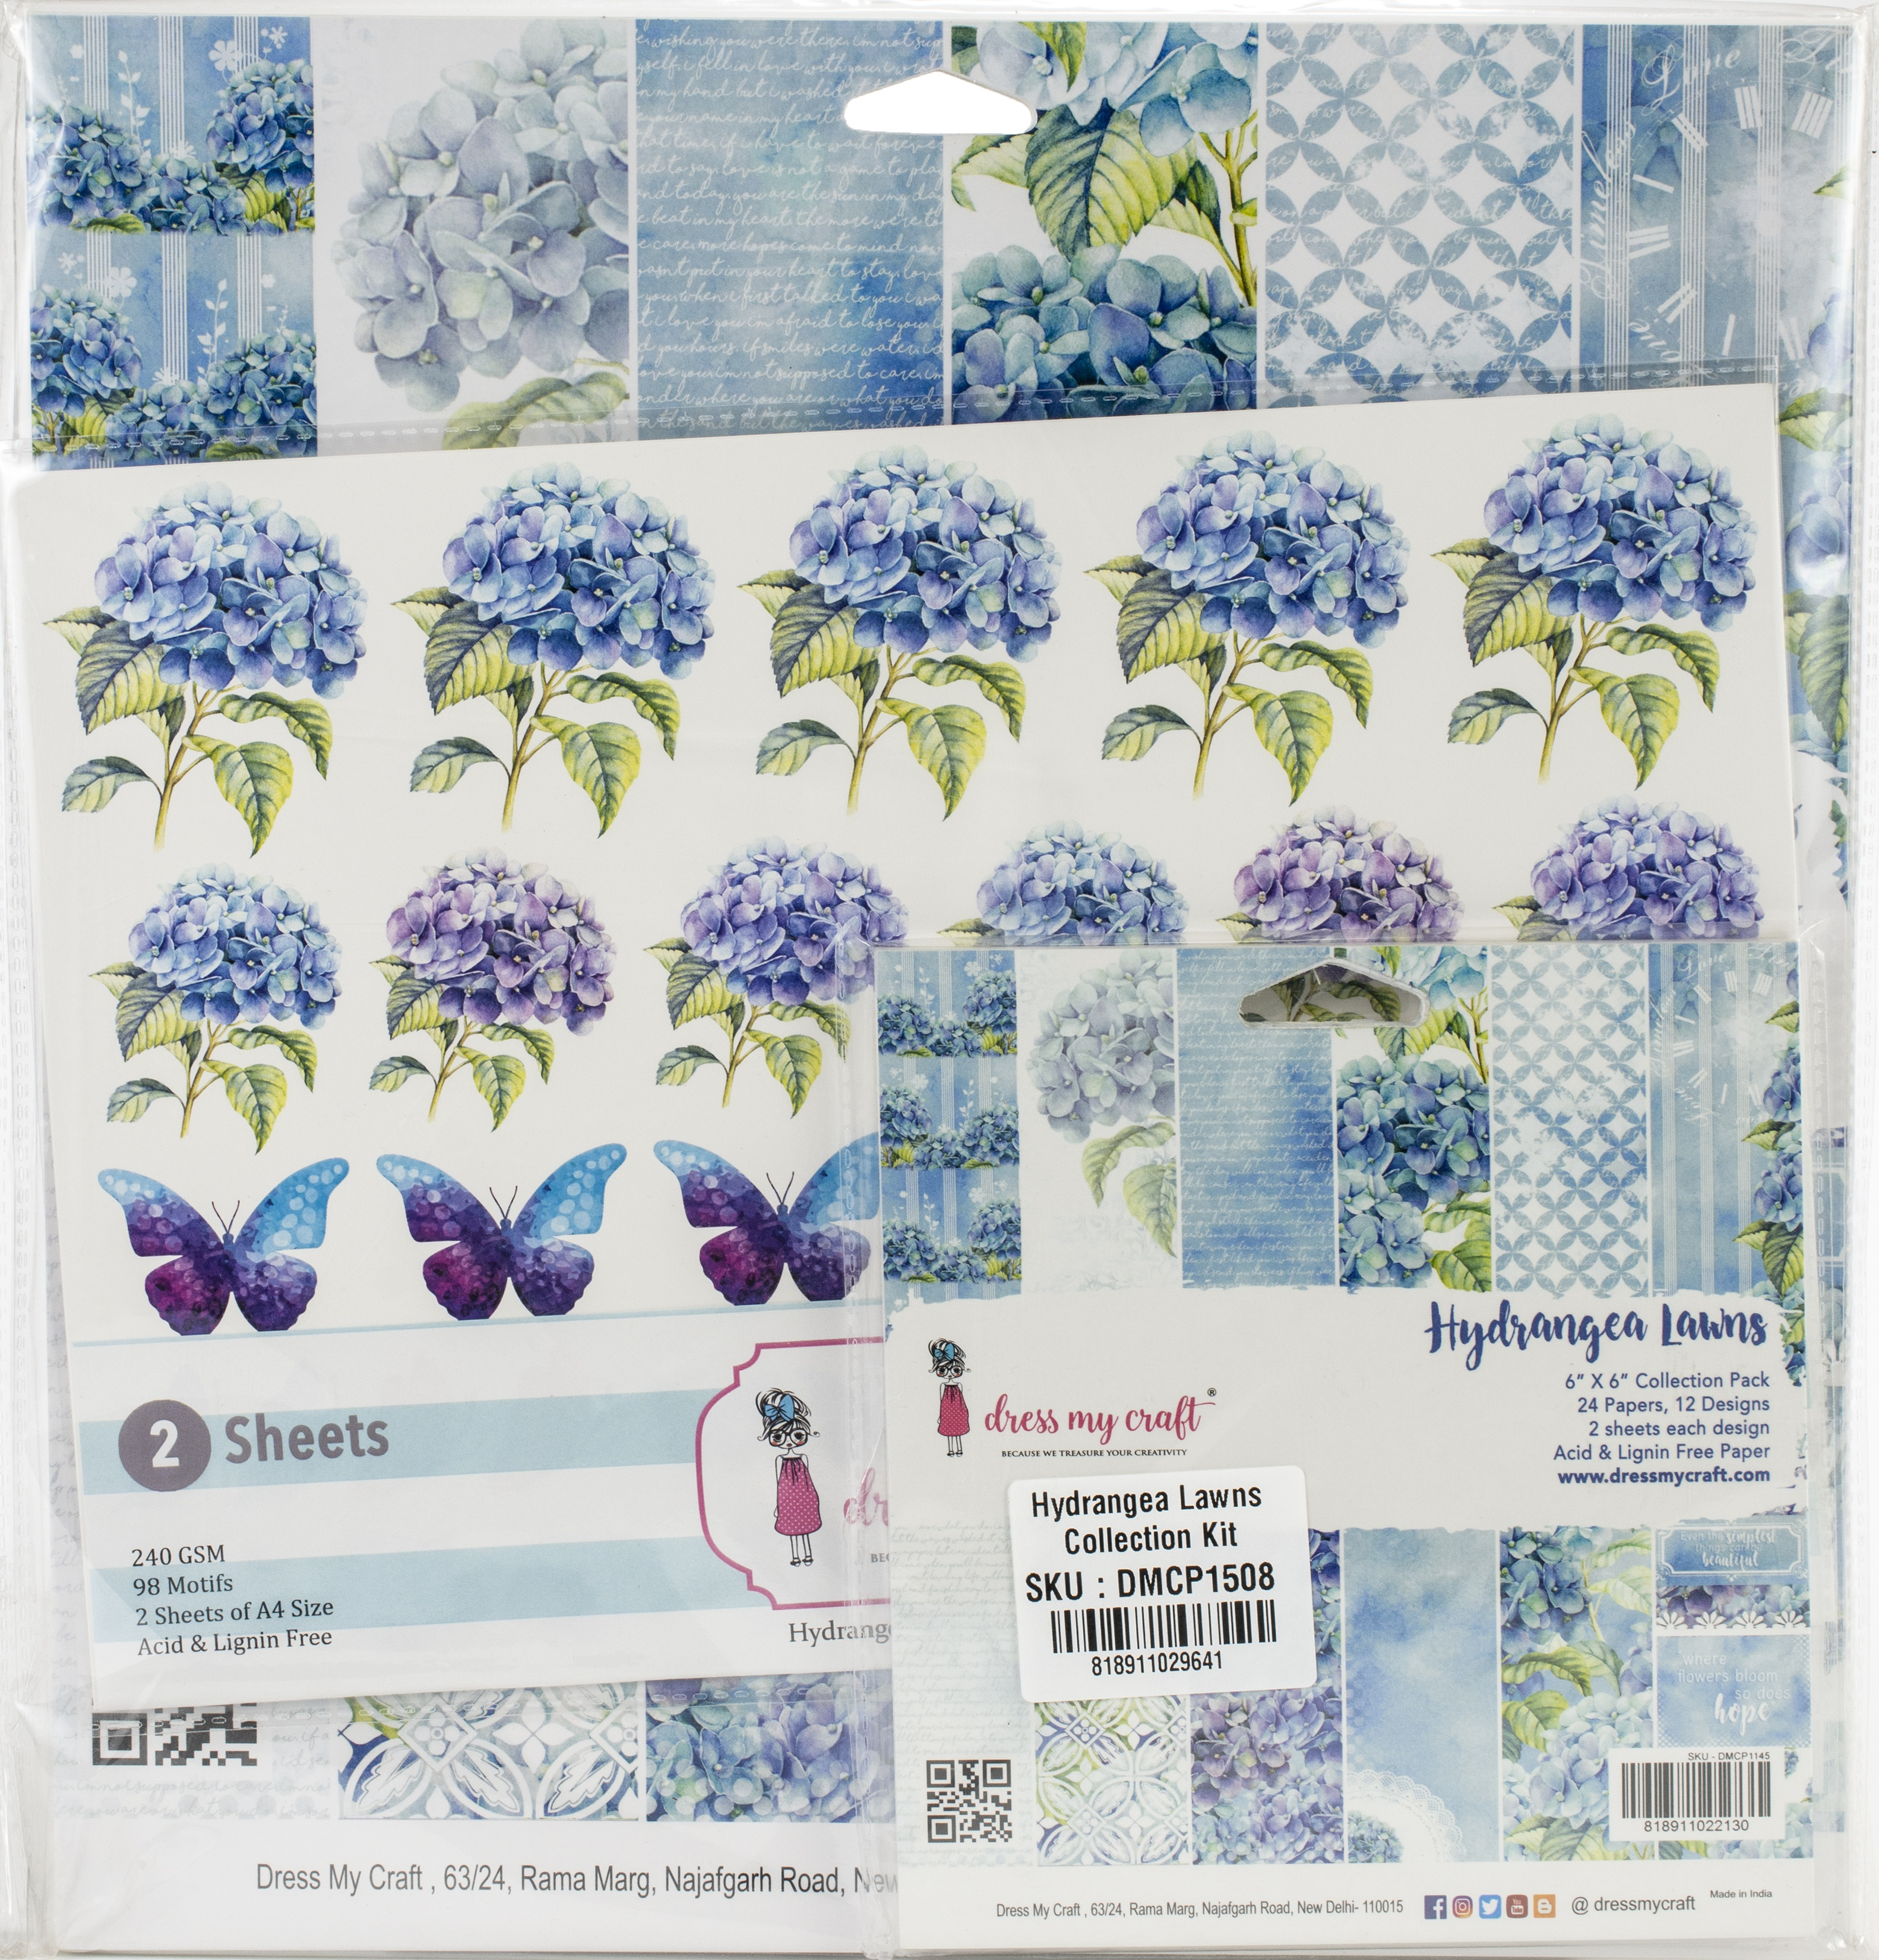 Dress My Craft Collection Kit - Hydrangea Lawns